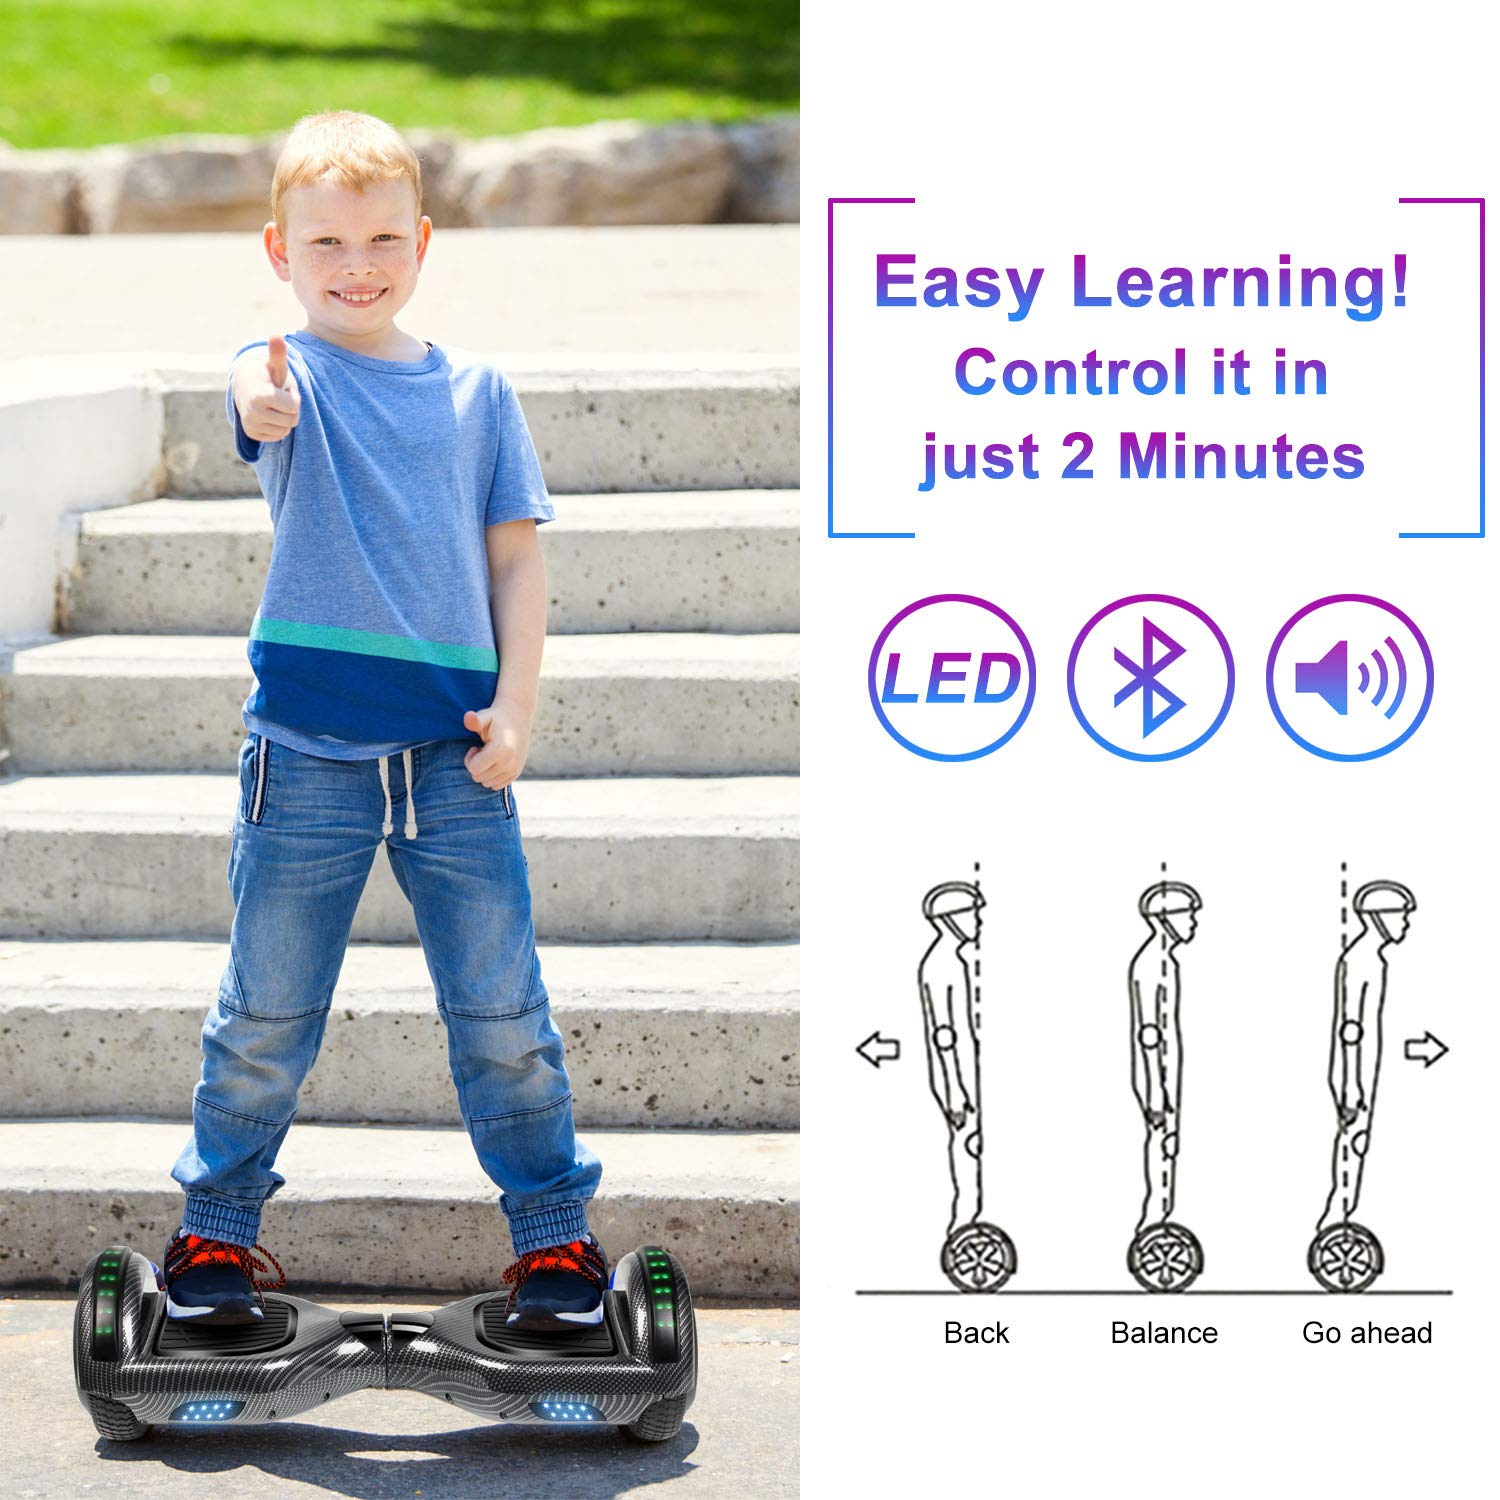 SISIGAD Hoverboard Self Balancing Scooter 6.5'' Two-Wheel Self Balancing Hoverboard with Bluetooth Speaker and LED Lights Electric Scooter for Adult Kids Gift UL 2272 Certified - Carbon Black by SISIGAD (Image #6)